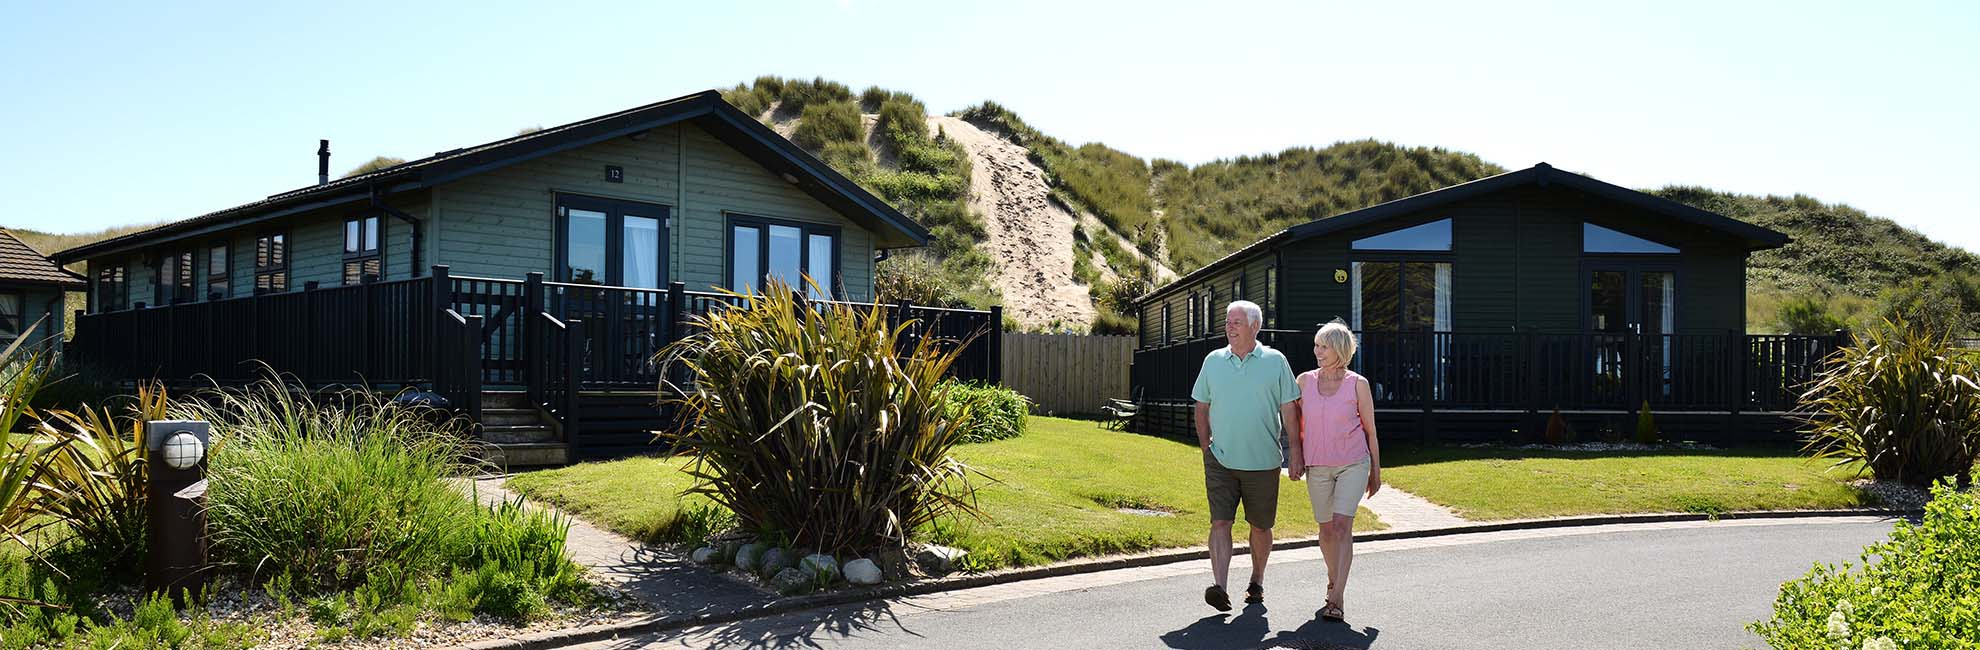 A couple strolling through the lodges at Ruda Holiday Park